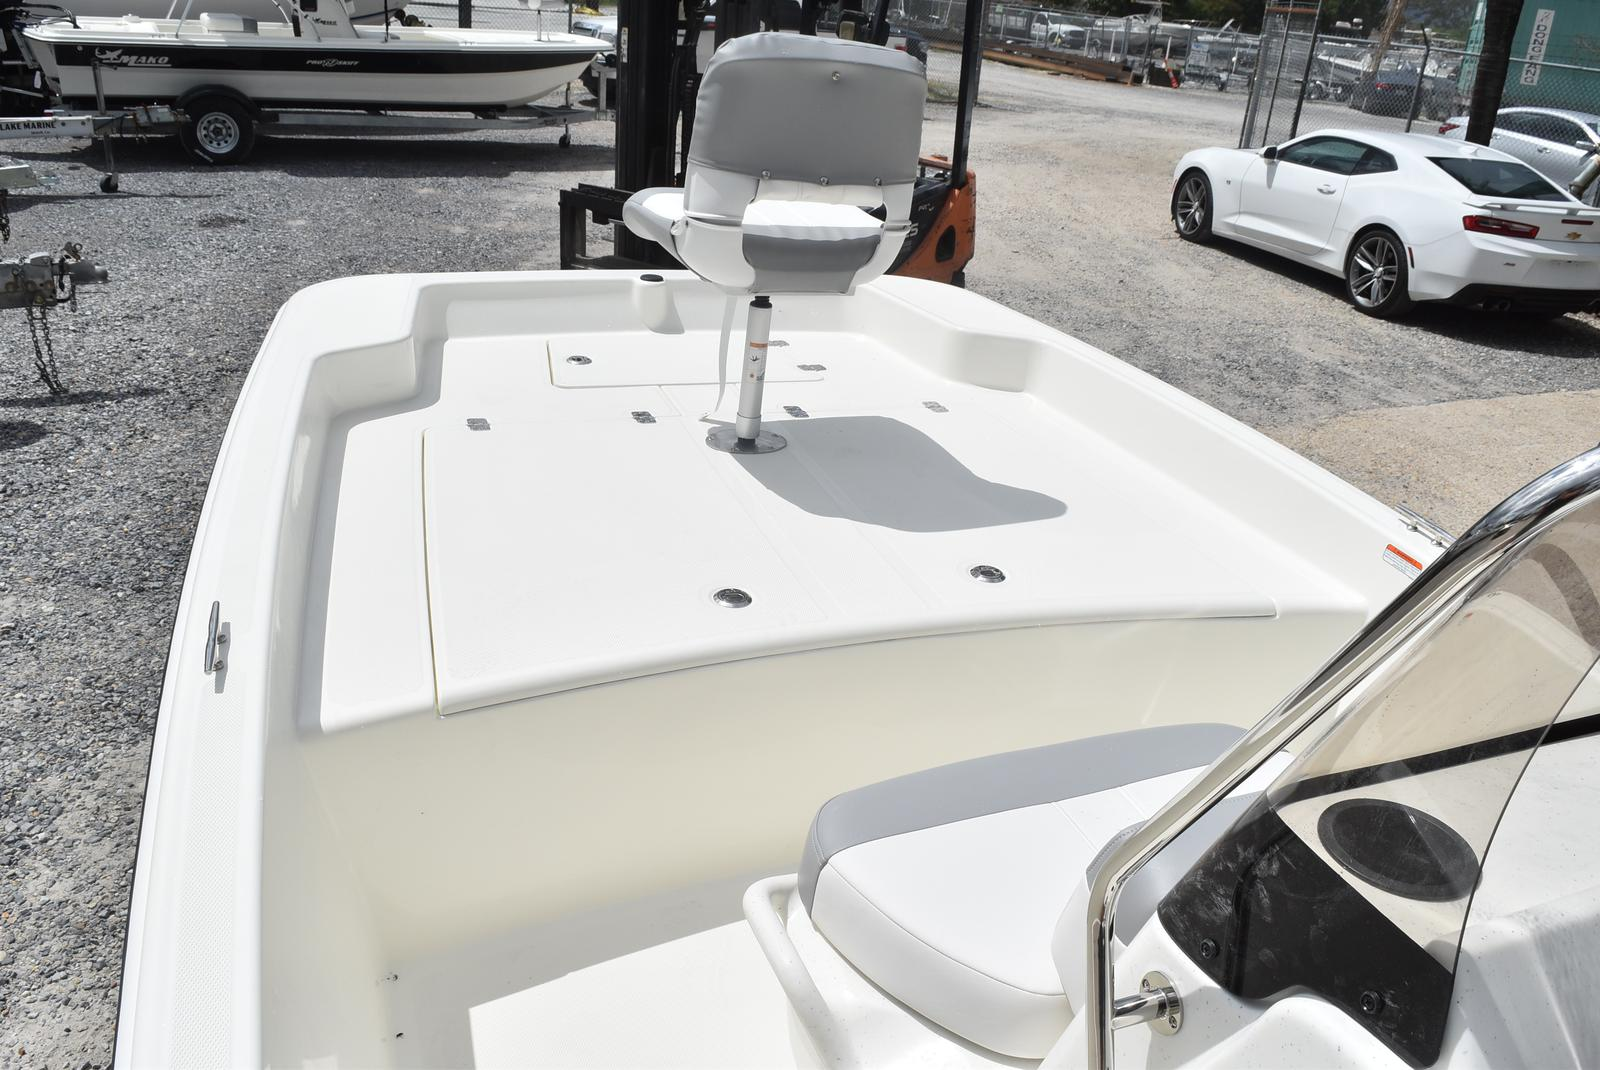 2020 Mako boat for sale, model of the boat is Pro Skiff 17, 75 ELPT & Image # 409 of 702